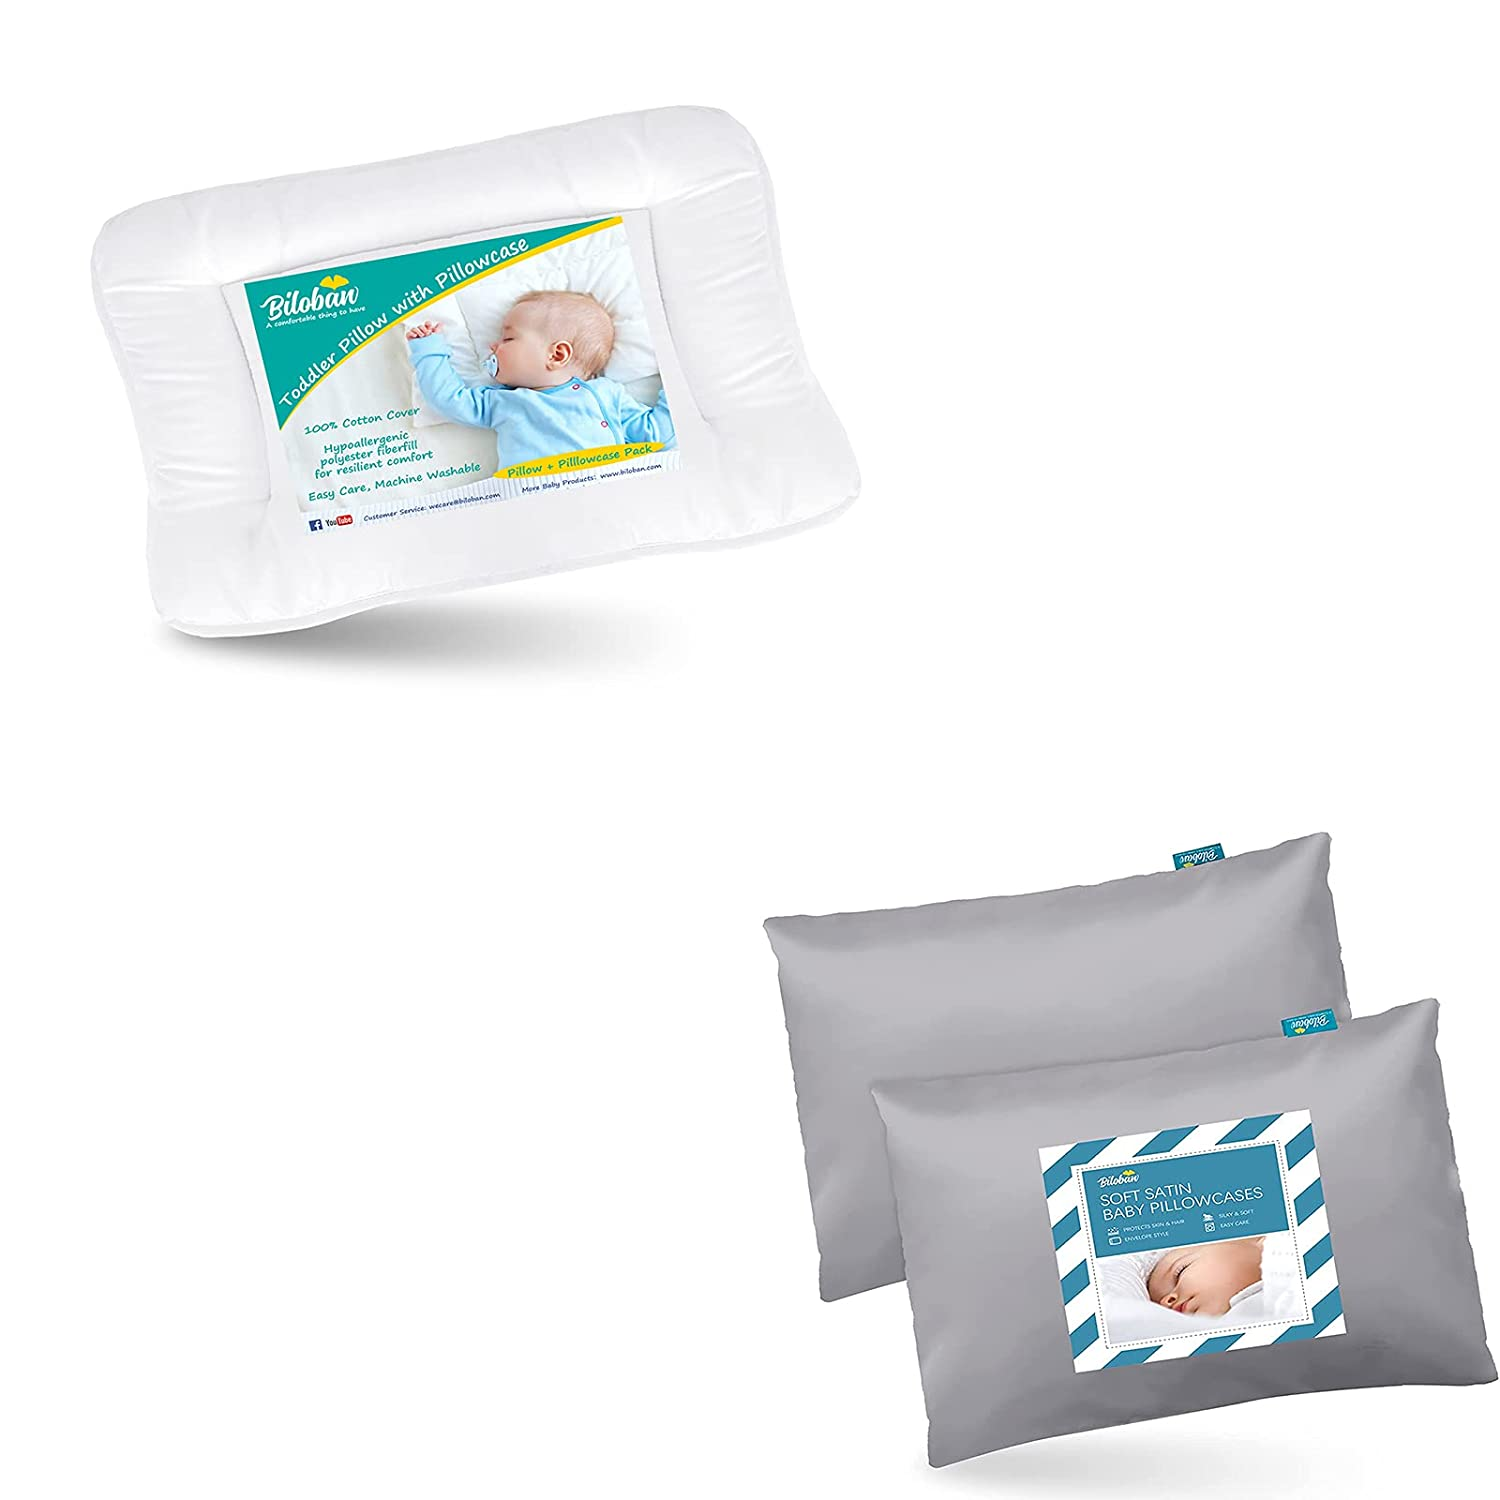 Baby Toddler Pillow for Raleigh Mall Sleeping White with Satin Gre Soft Outlet ☆ Free Shipping Ultra